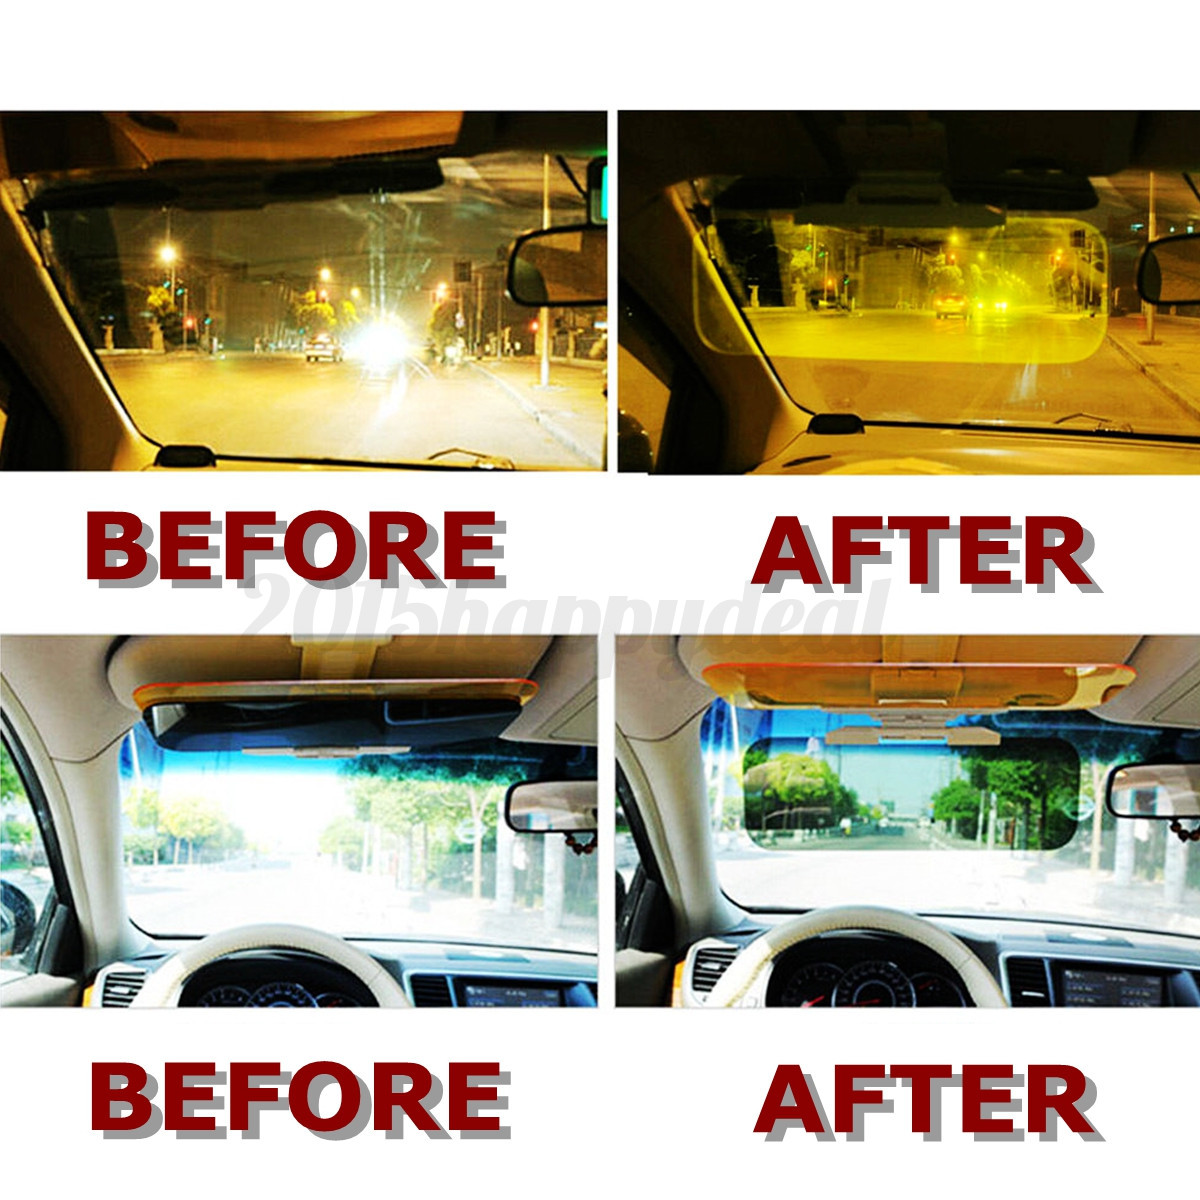 How To Use Hd Visor Anti Glare For Cars